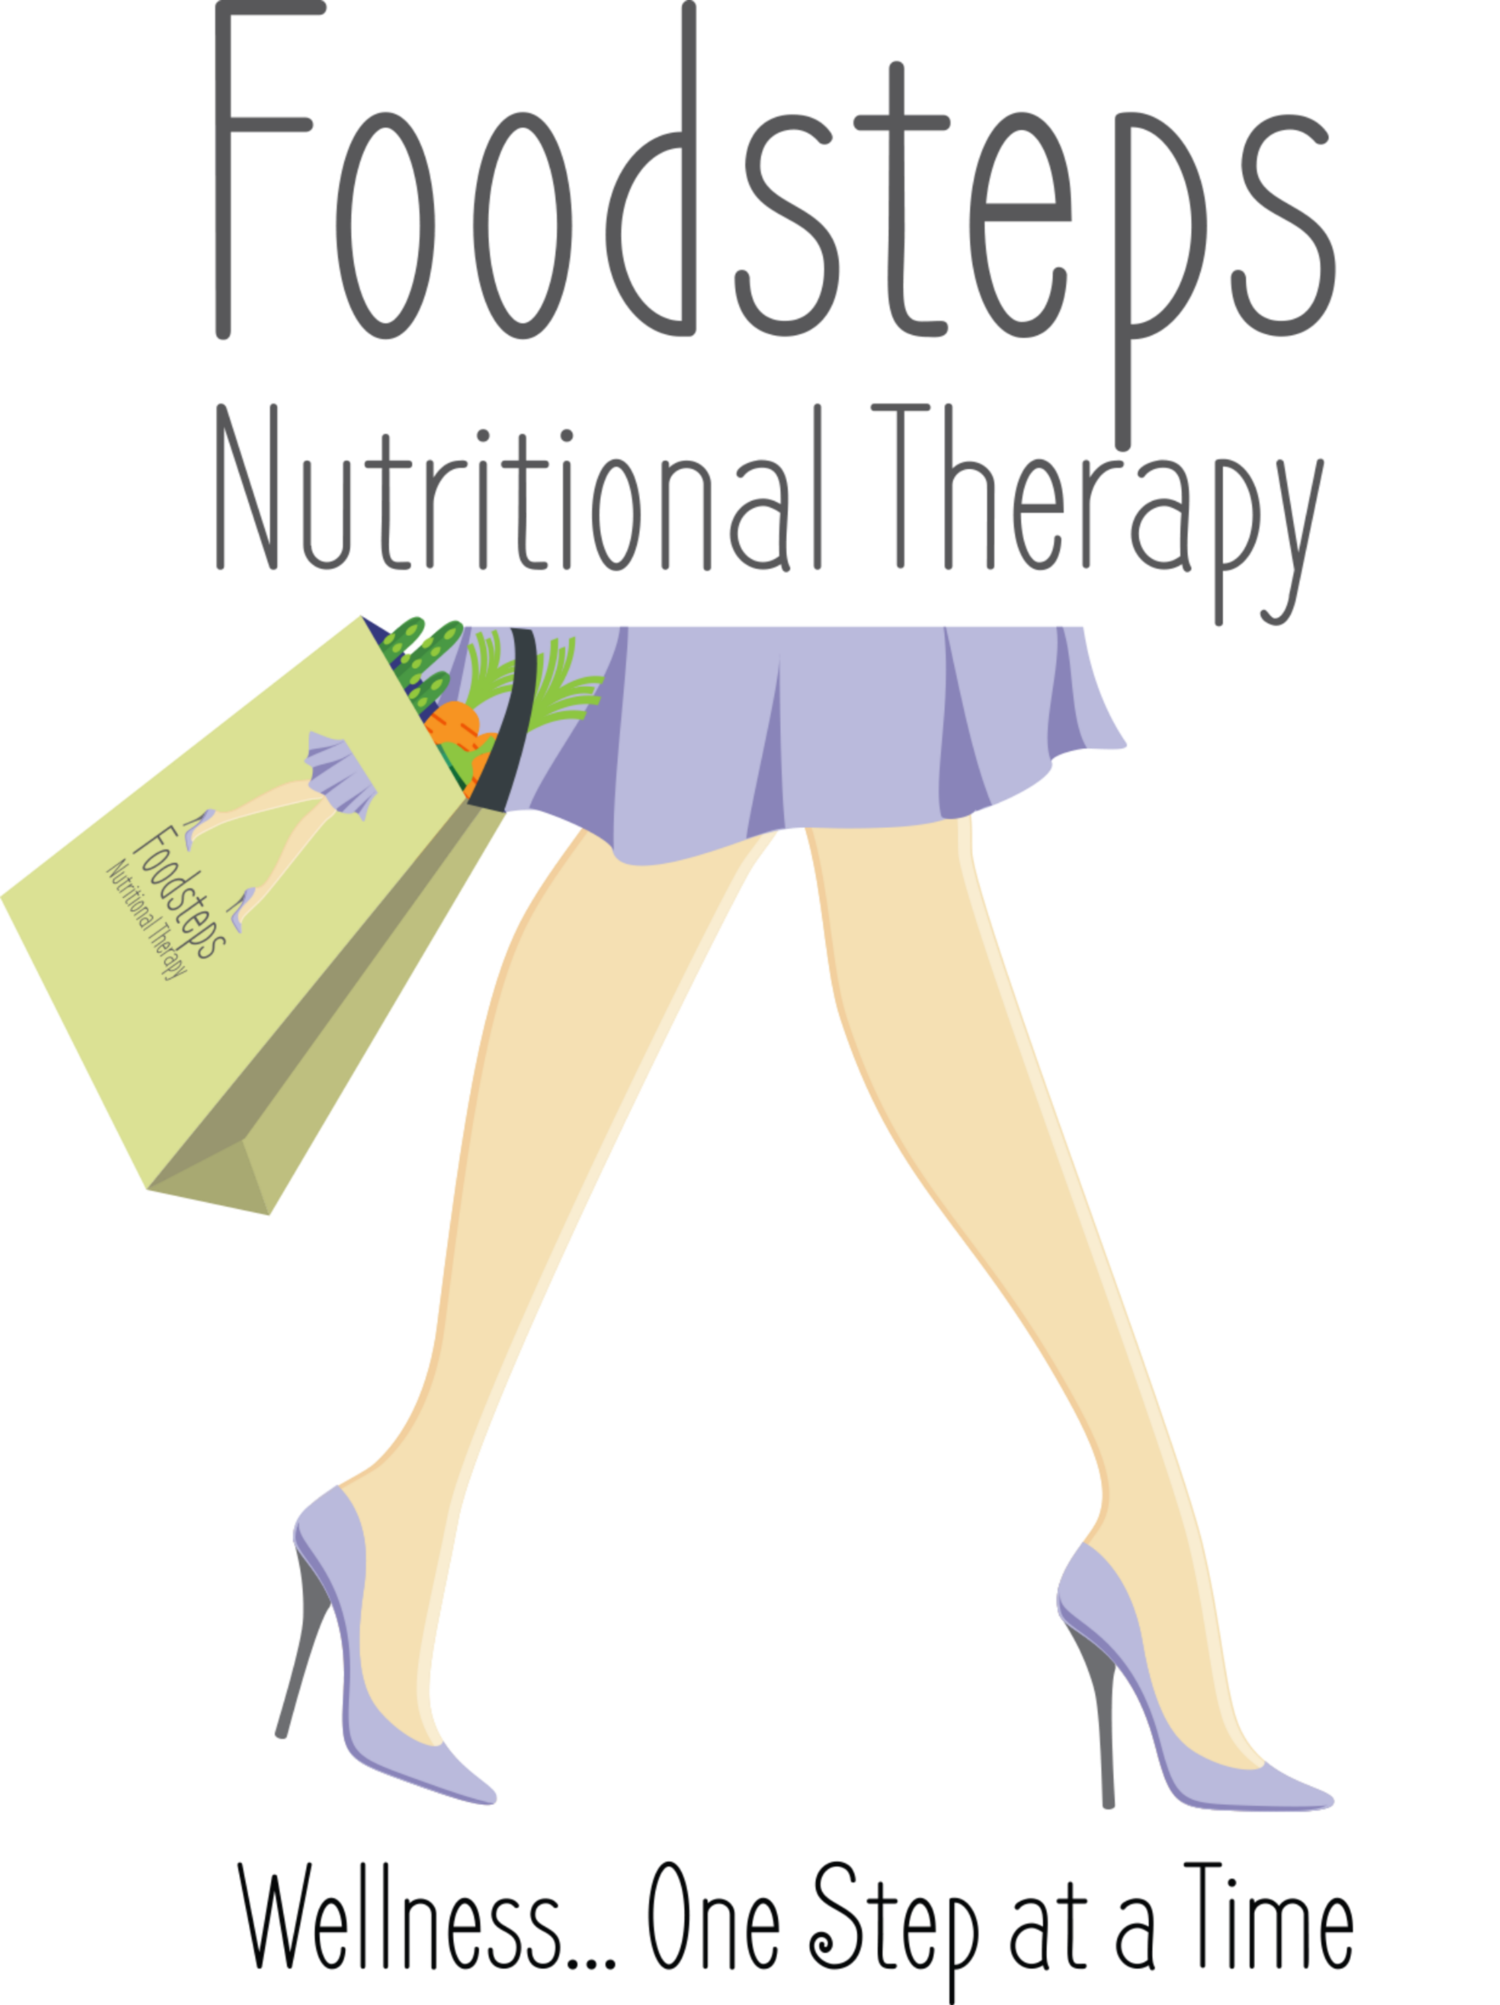 Foodsteps Nutritional Therapy